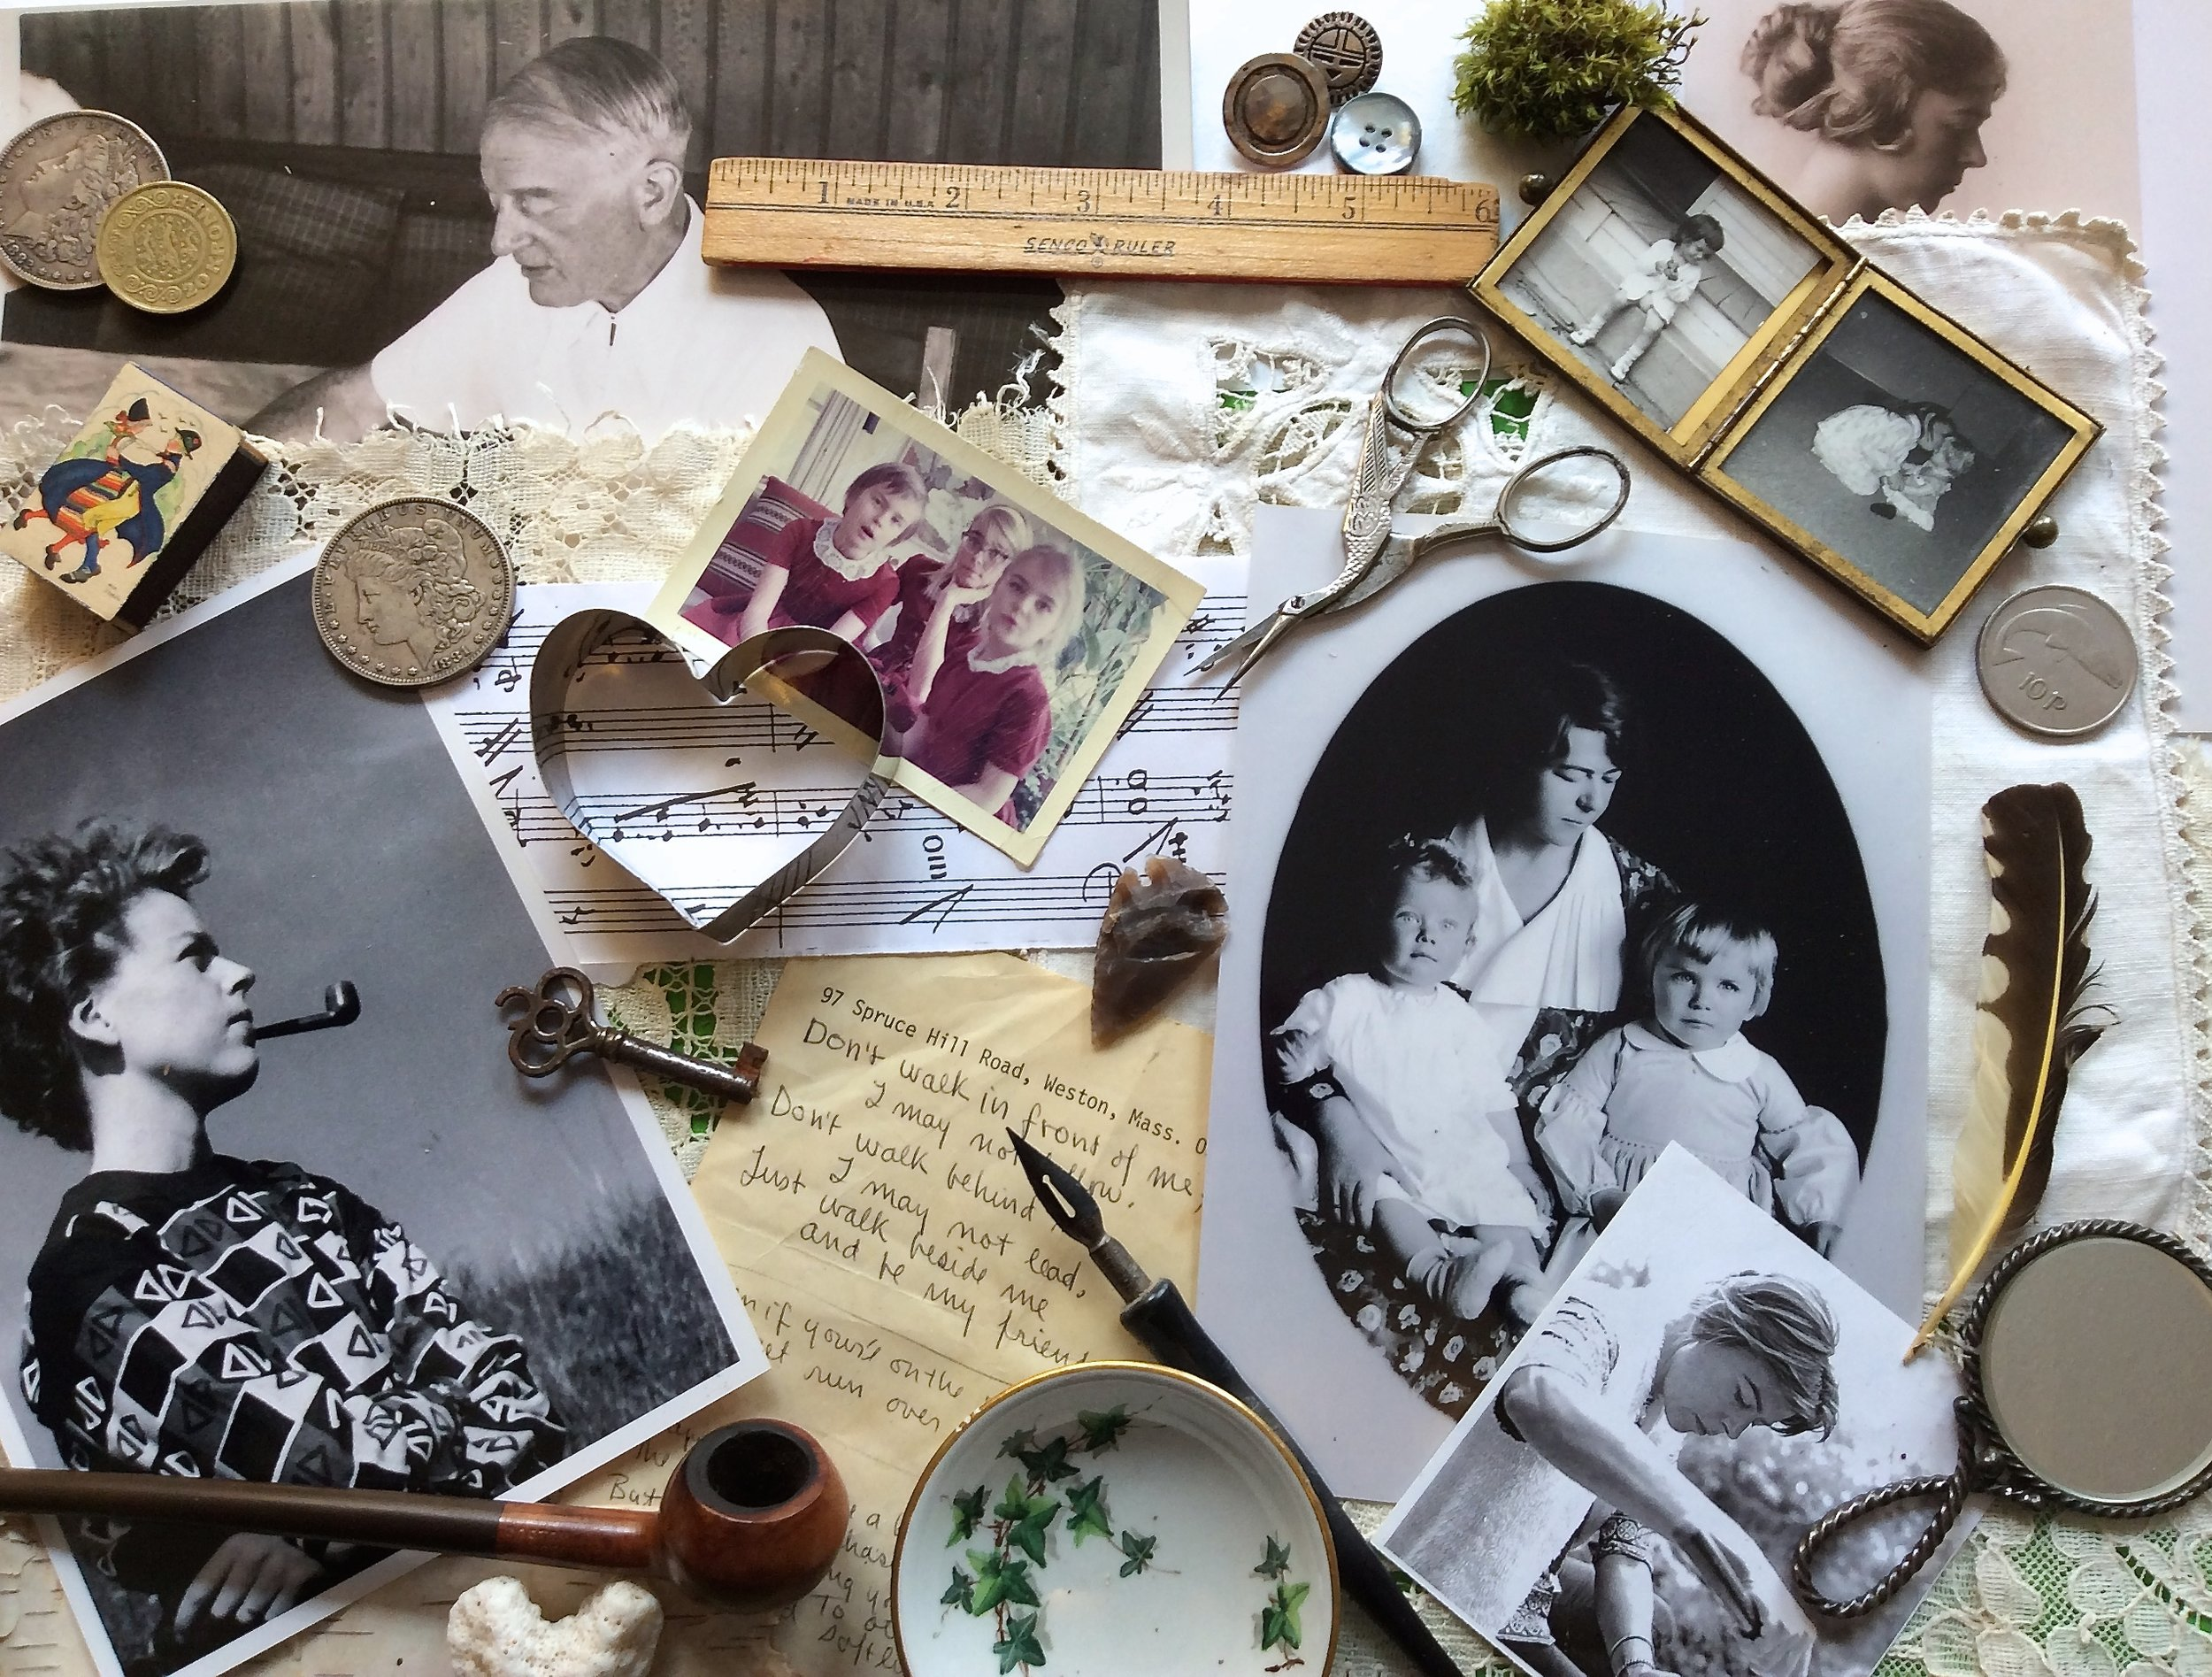 Collage with old photos and memorabilia